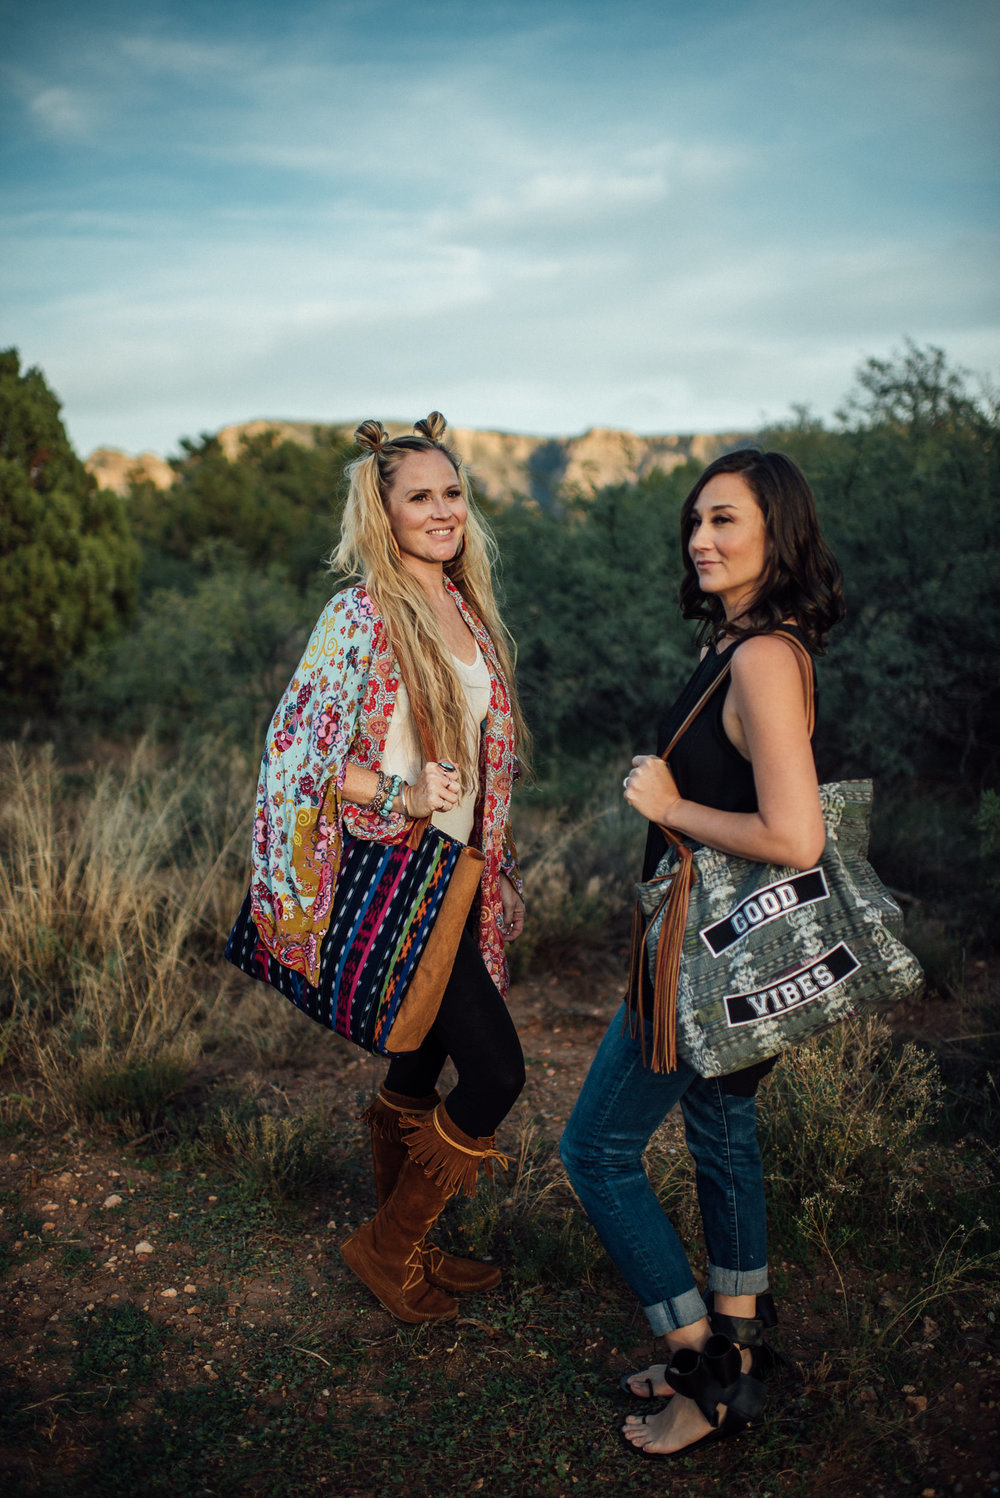 Arizona-Boho-Wedding-Photographer-Handbags-37.jpg